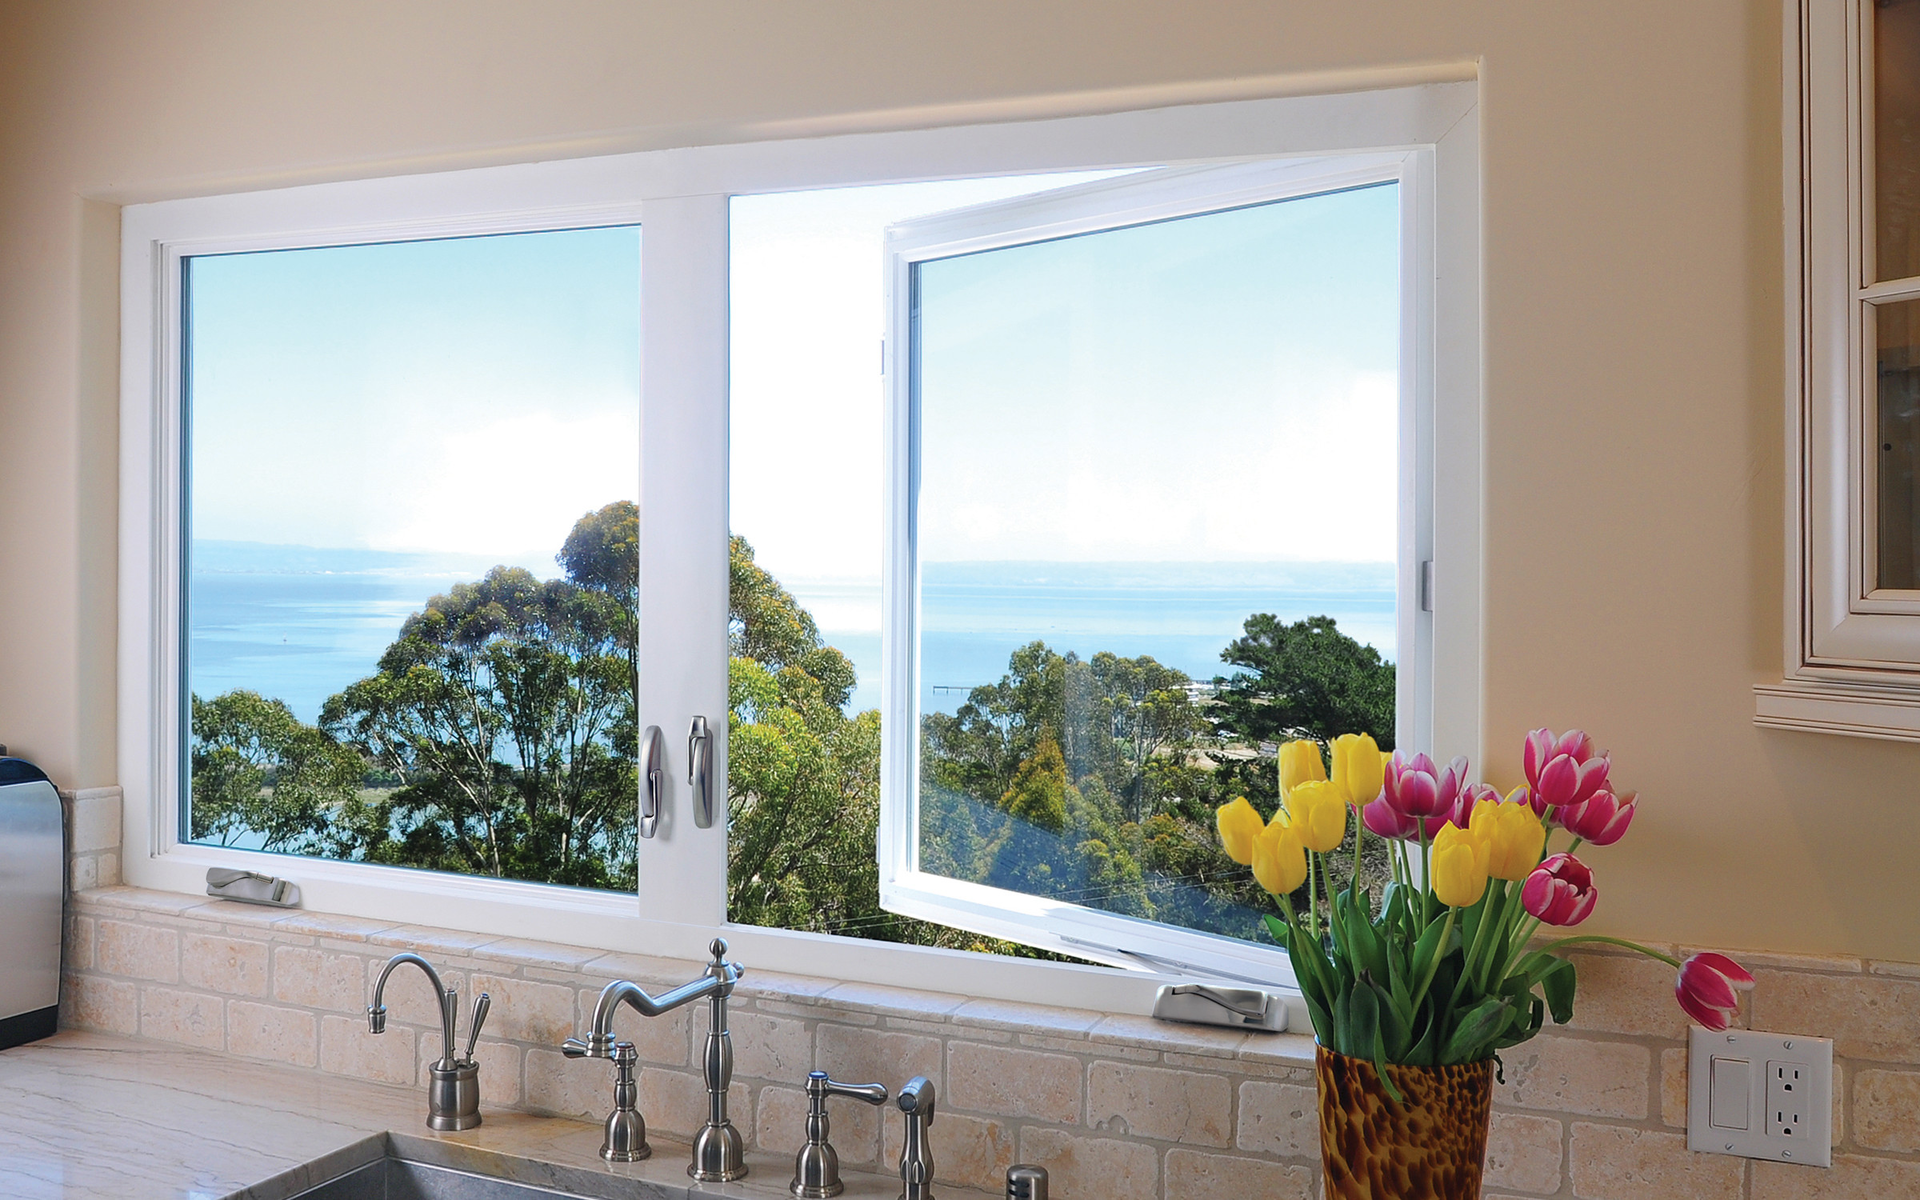 Energy efficient replacement windows for residential pro for Simonton windows